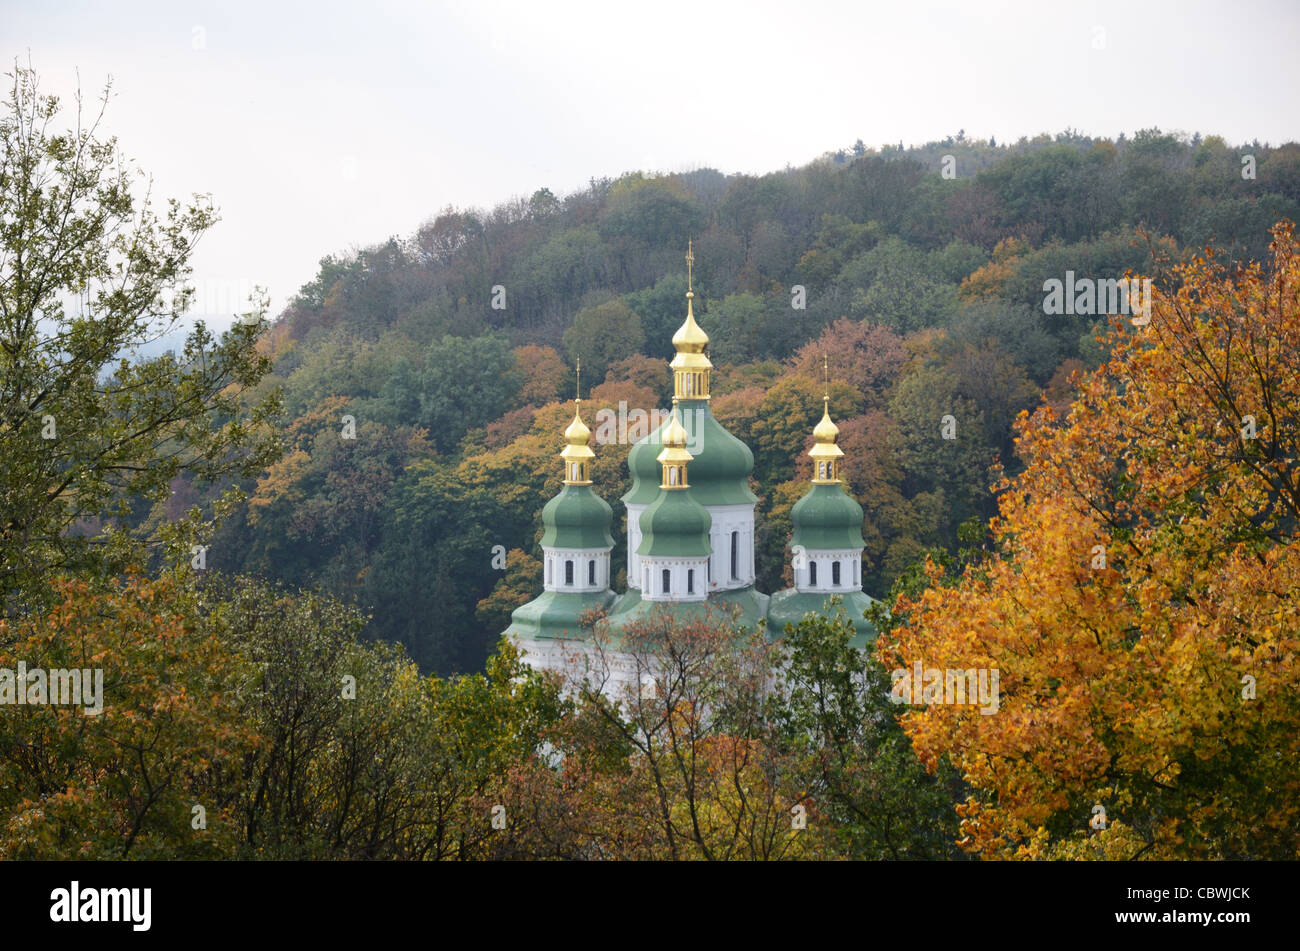 Orthodox church in the autumn park. - Stock Image